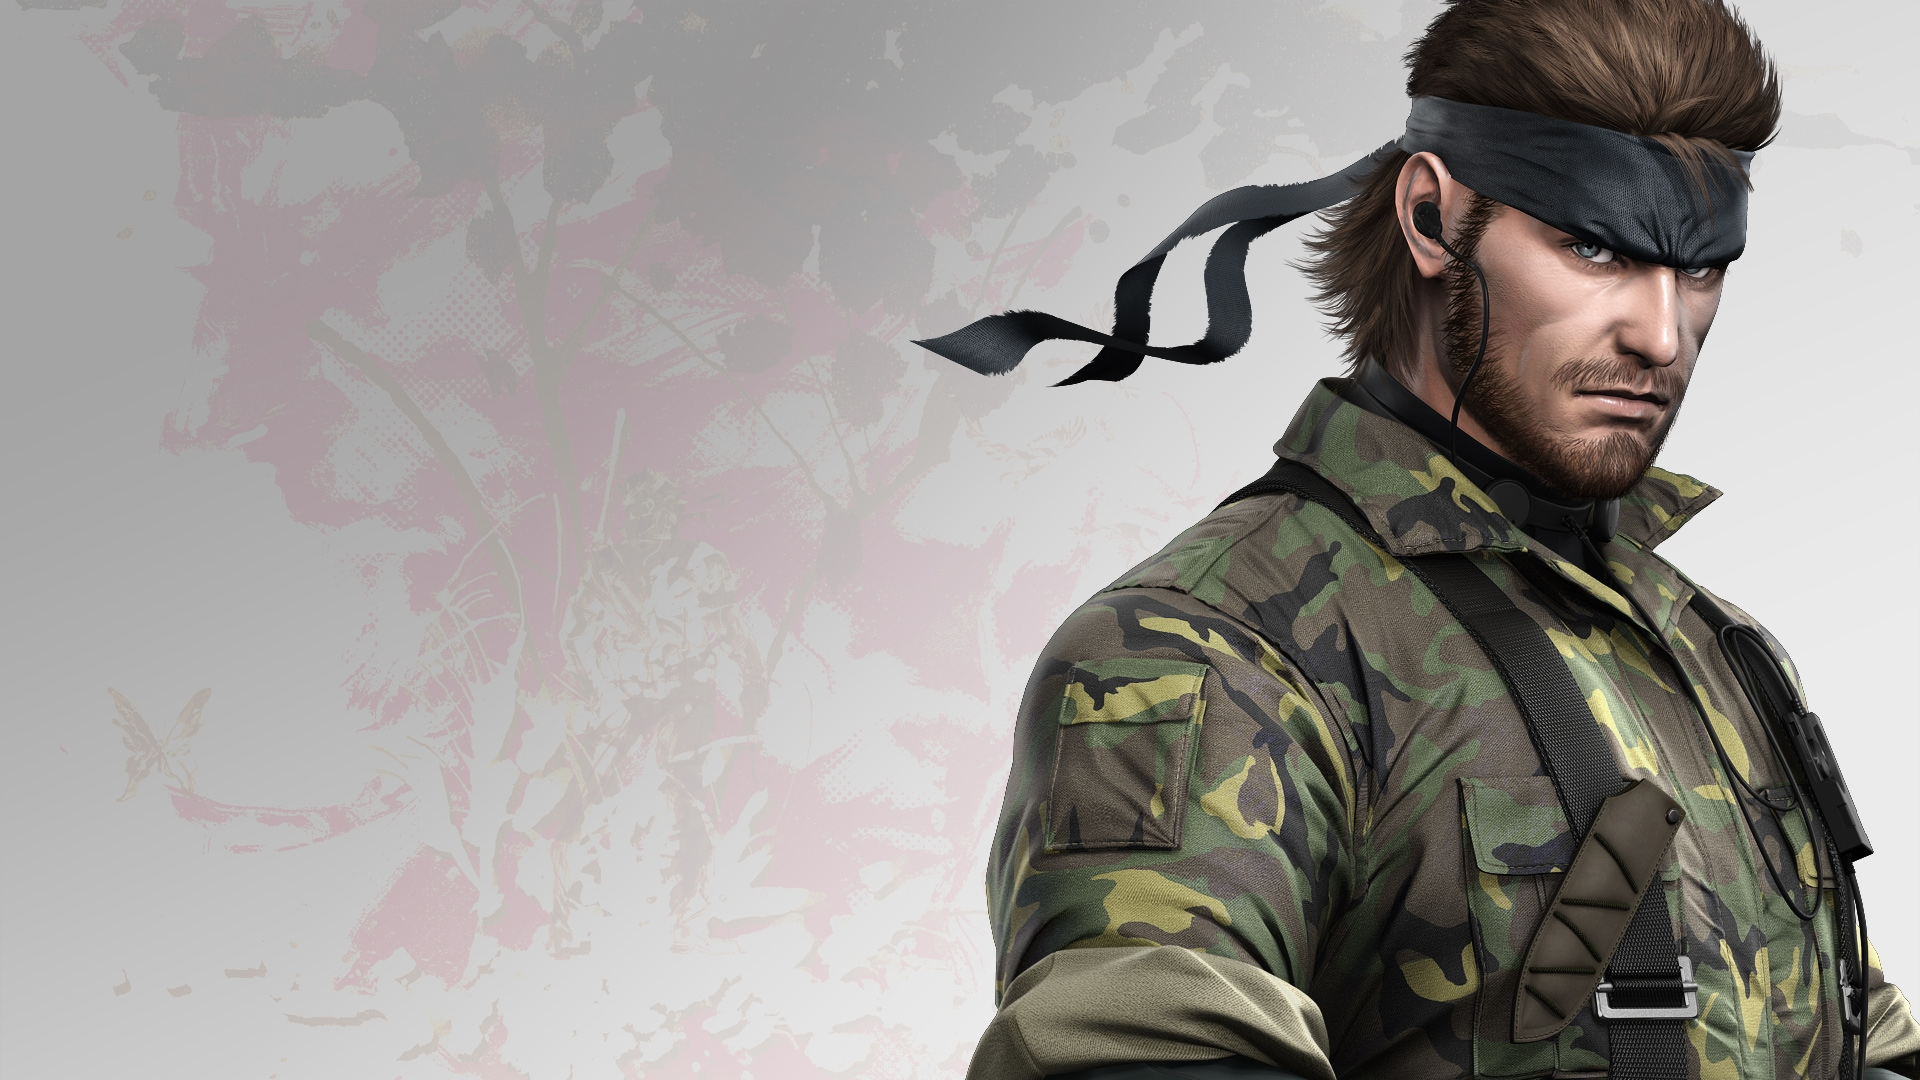 Metal gear solid snake high definition wallpapers hd wallpapers metal gear solid snake hd wallpaper voltagebd